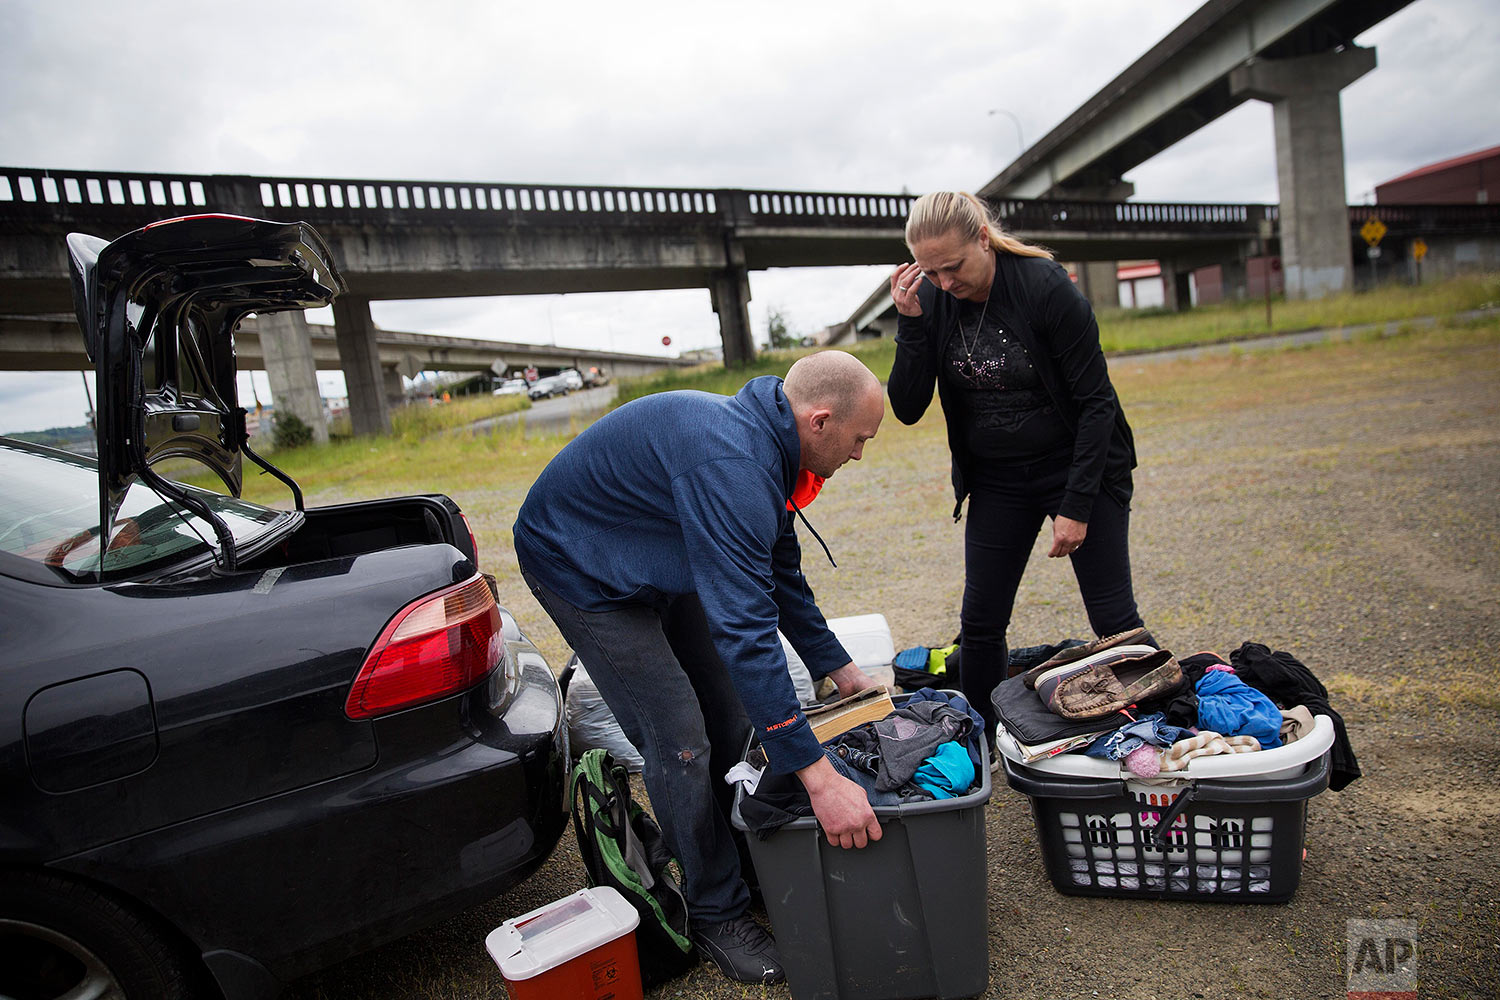 Staci Hadley, right, and boyfriend Deric Hensler rearrange their personal items out of their car which they are living out of in Aberdeen, Wash., Wednesday June 14, 2017. The couple had gotten clean on a methadone program, moved into a nice apartment and started building a better life. Then Hensler lost his job, his insurance and couldn't get methadone anymore. Now they're back on drugs and living in their car and they're trying to figure out a safe place to park and sleep for the night. (AP Photo/David Goldman)